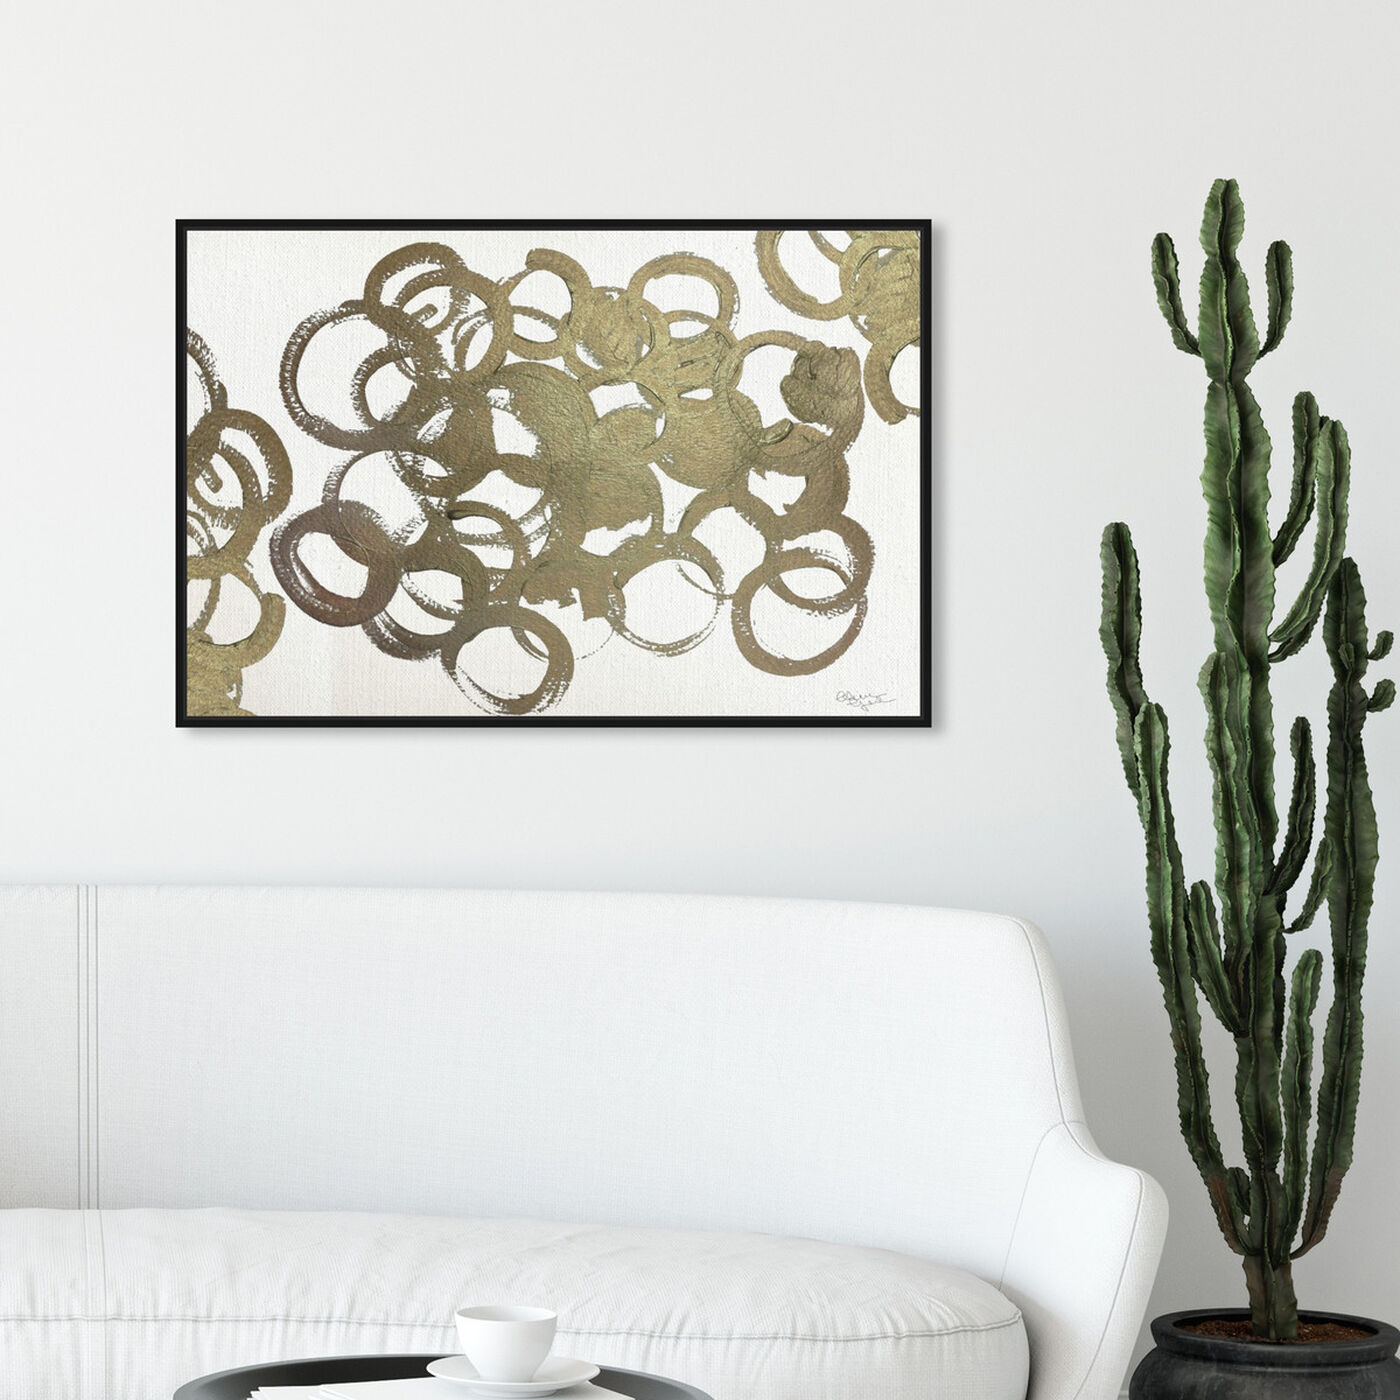 Hanging view of De Gala featuring abstract and shapes art.